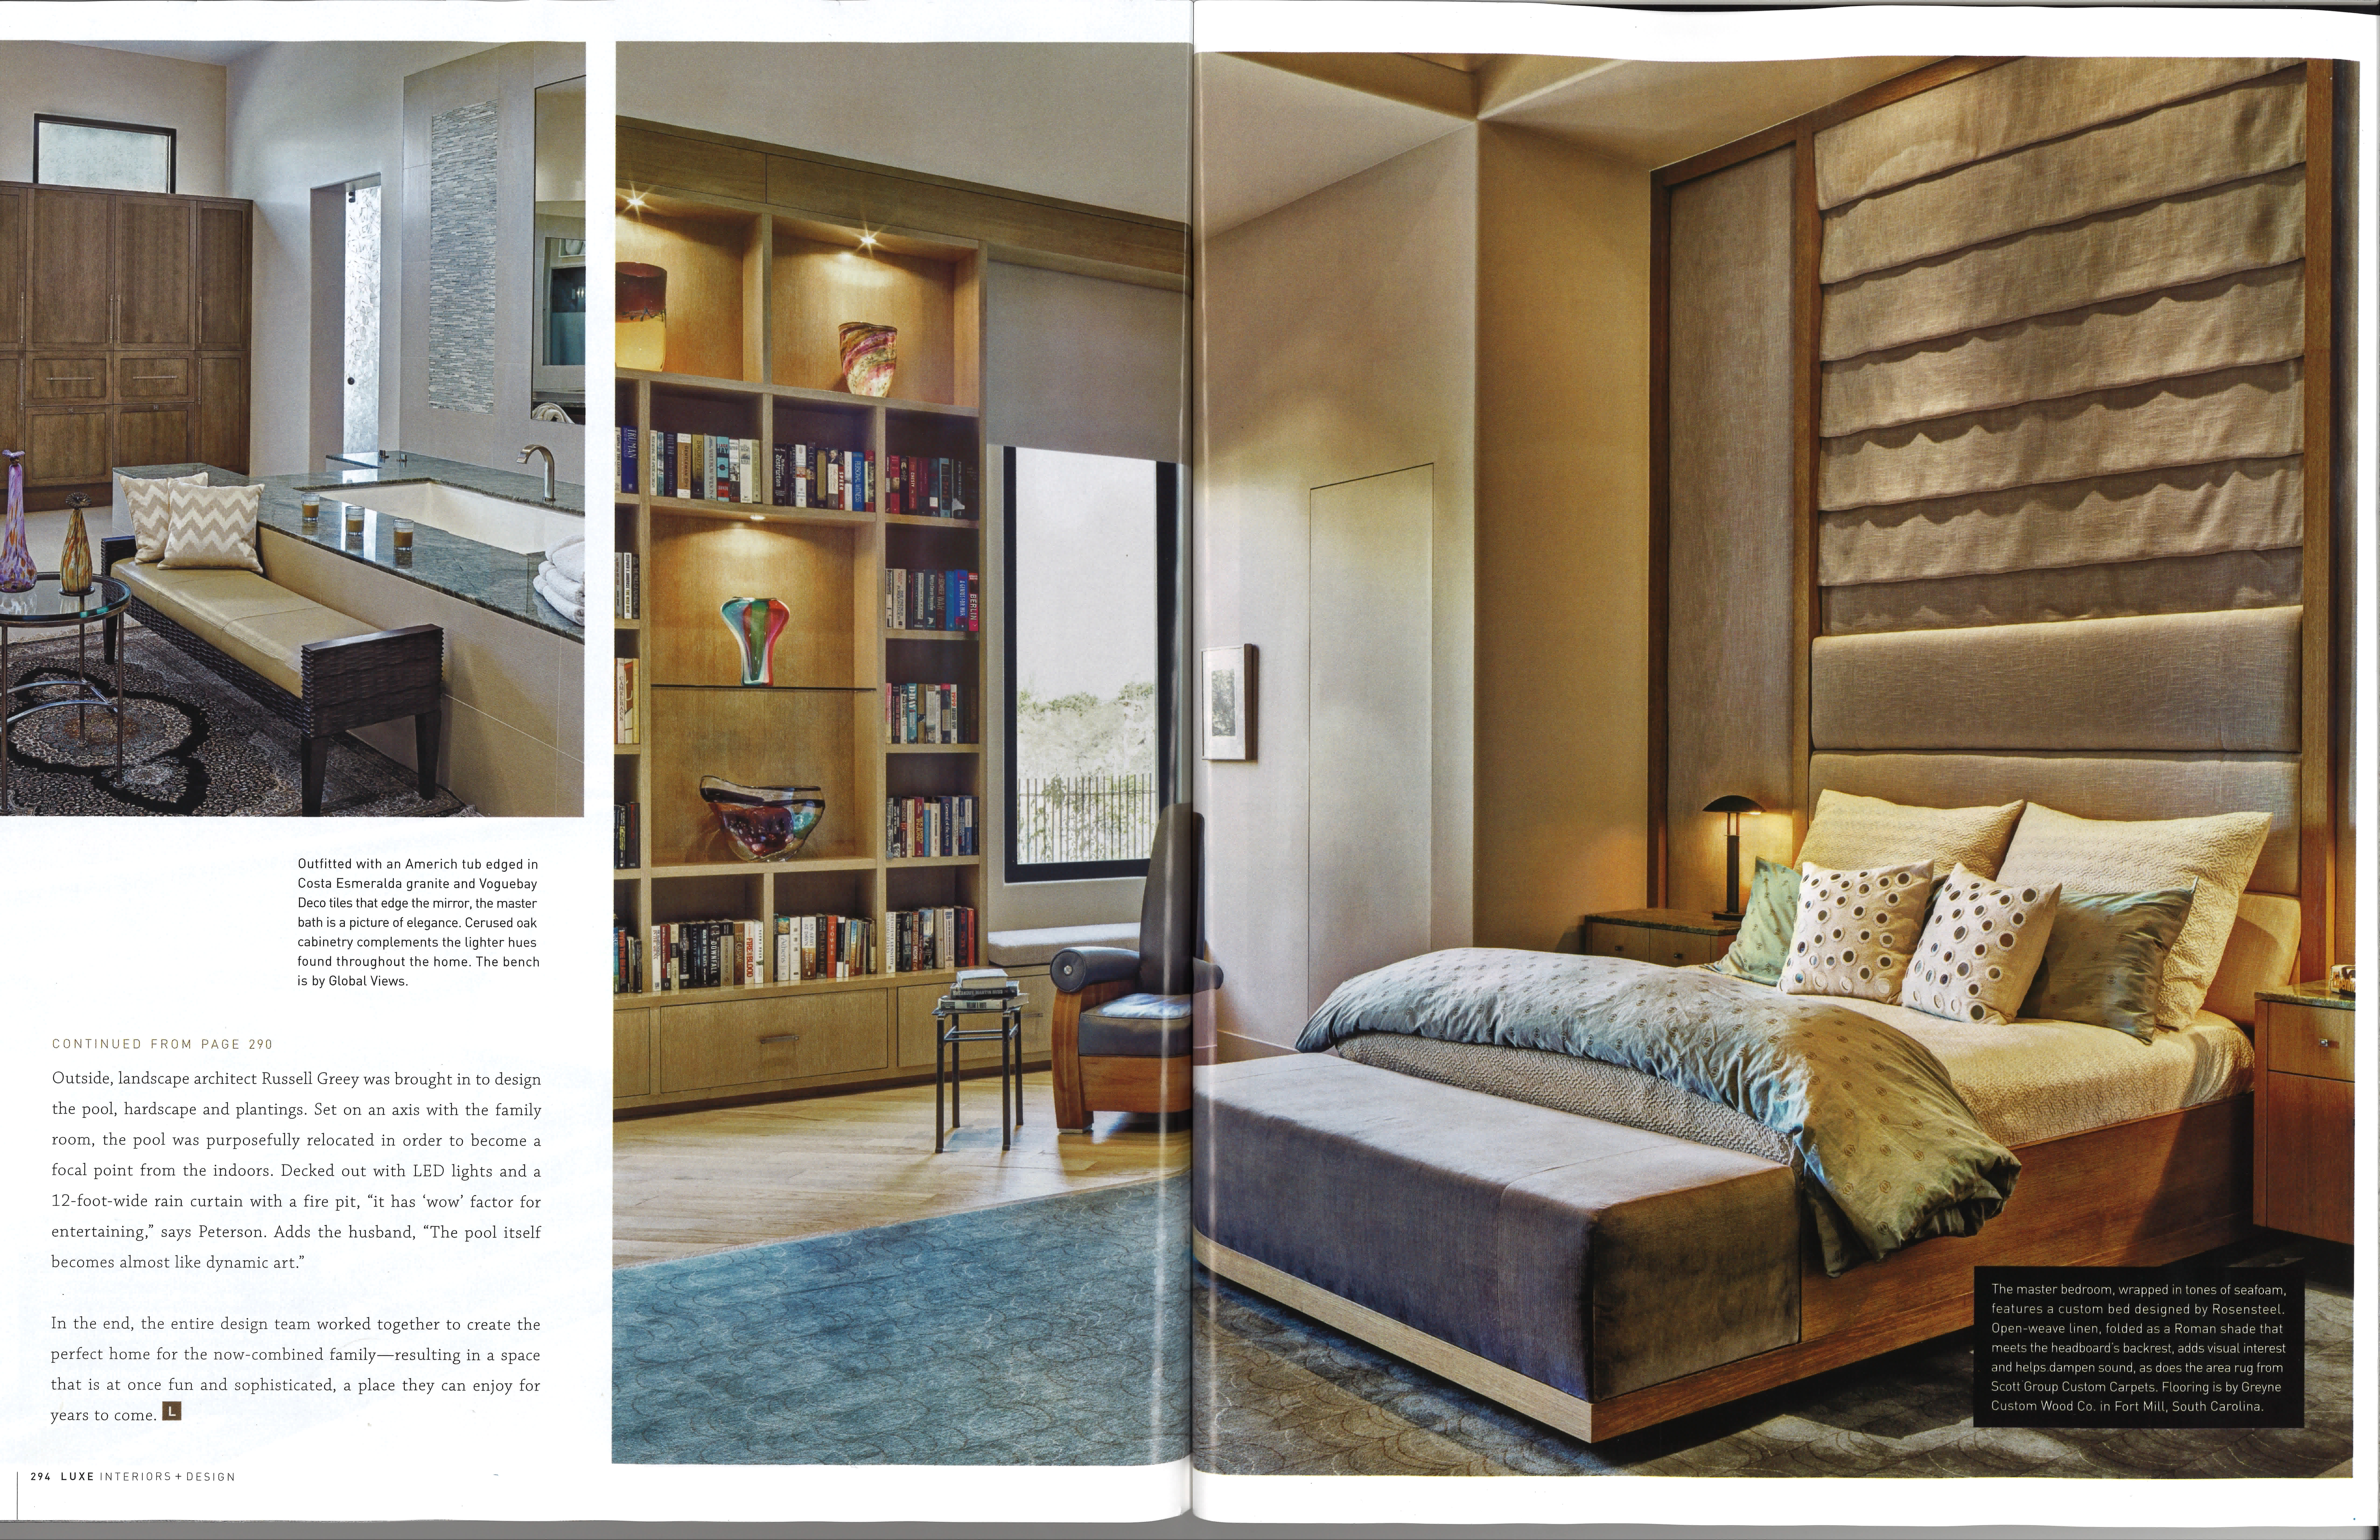 Hot off the press Luxe Interiors Design PHX Architecture PHX